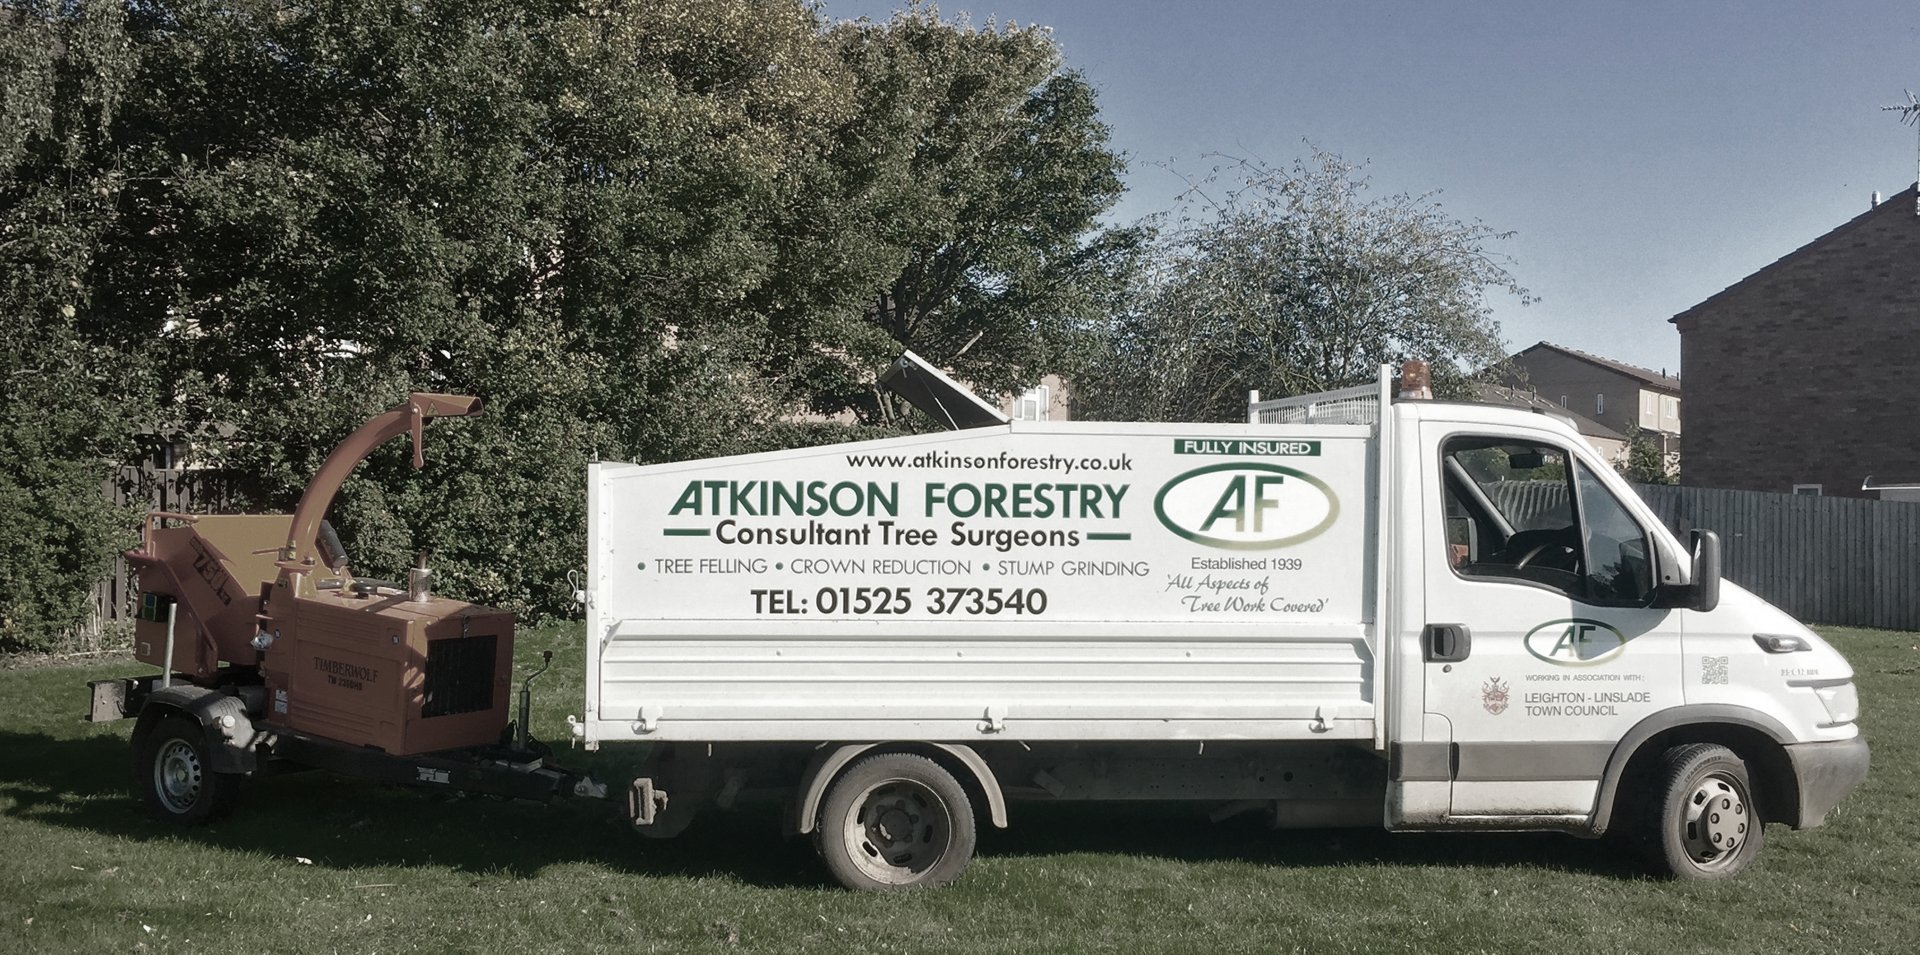 van for transporting trees